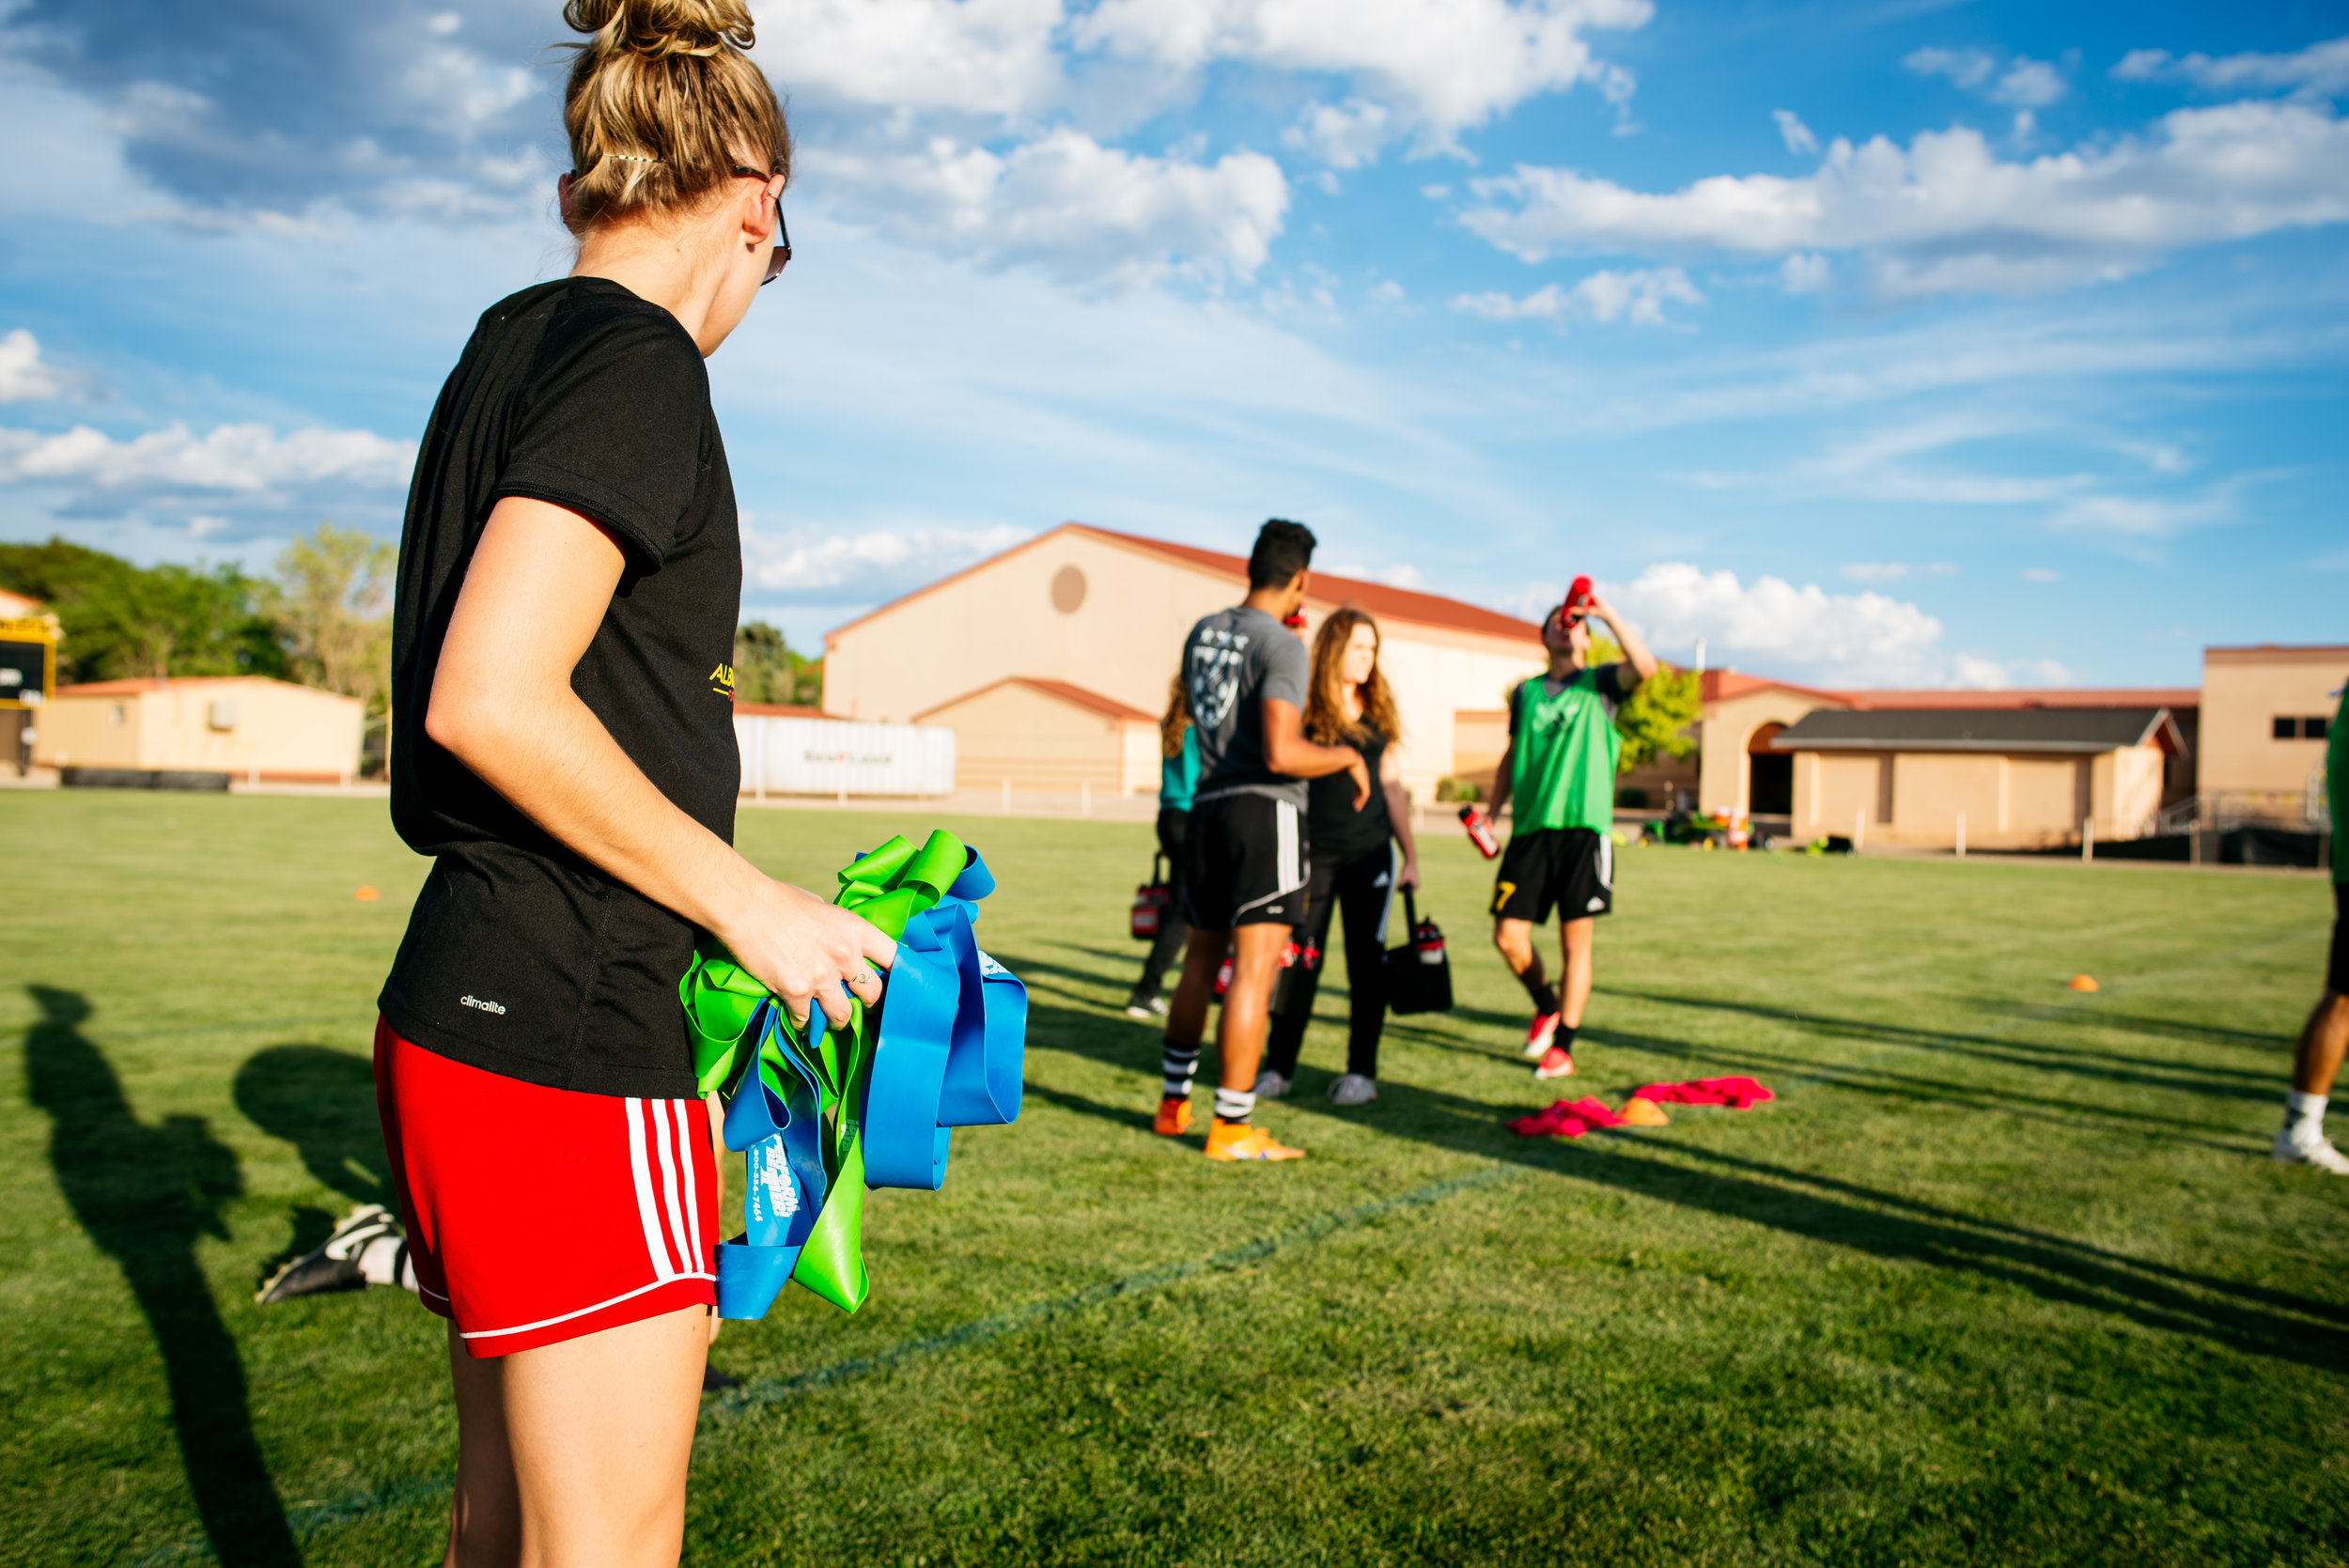 Julie Holt, athletic trainer for the Albuquerque Sol, works with her team to help prevent injury.